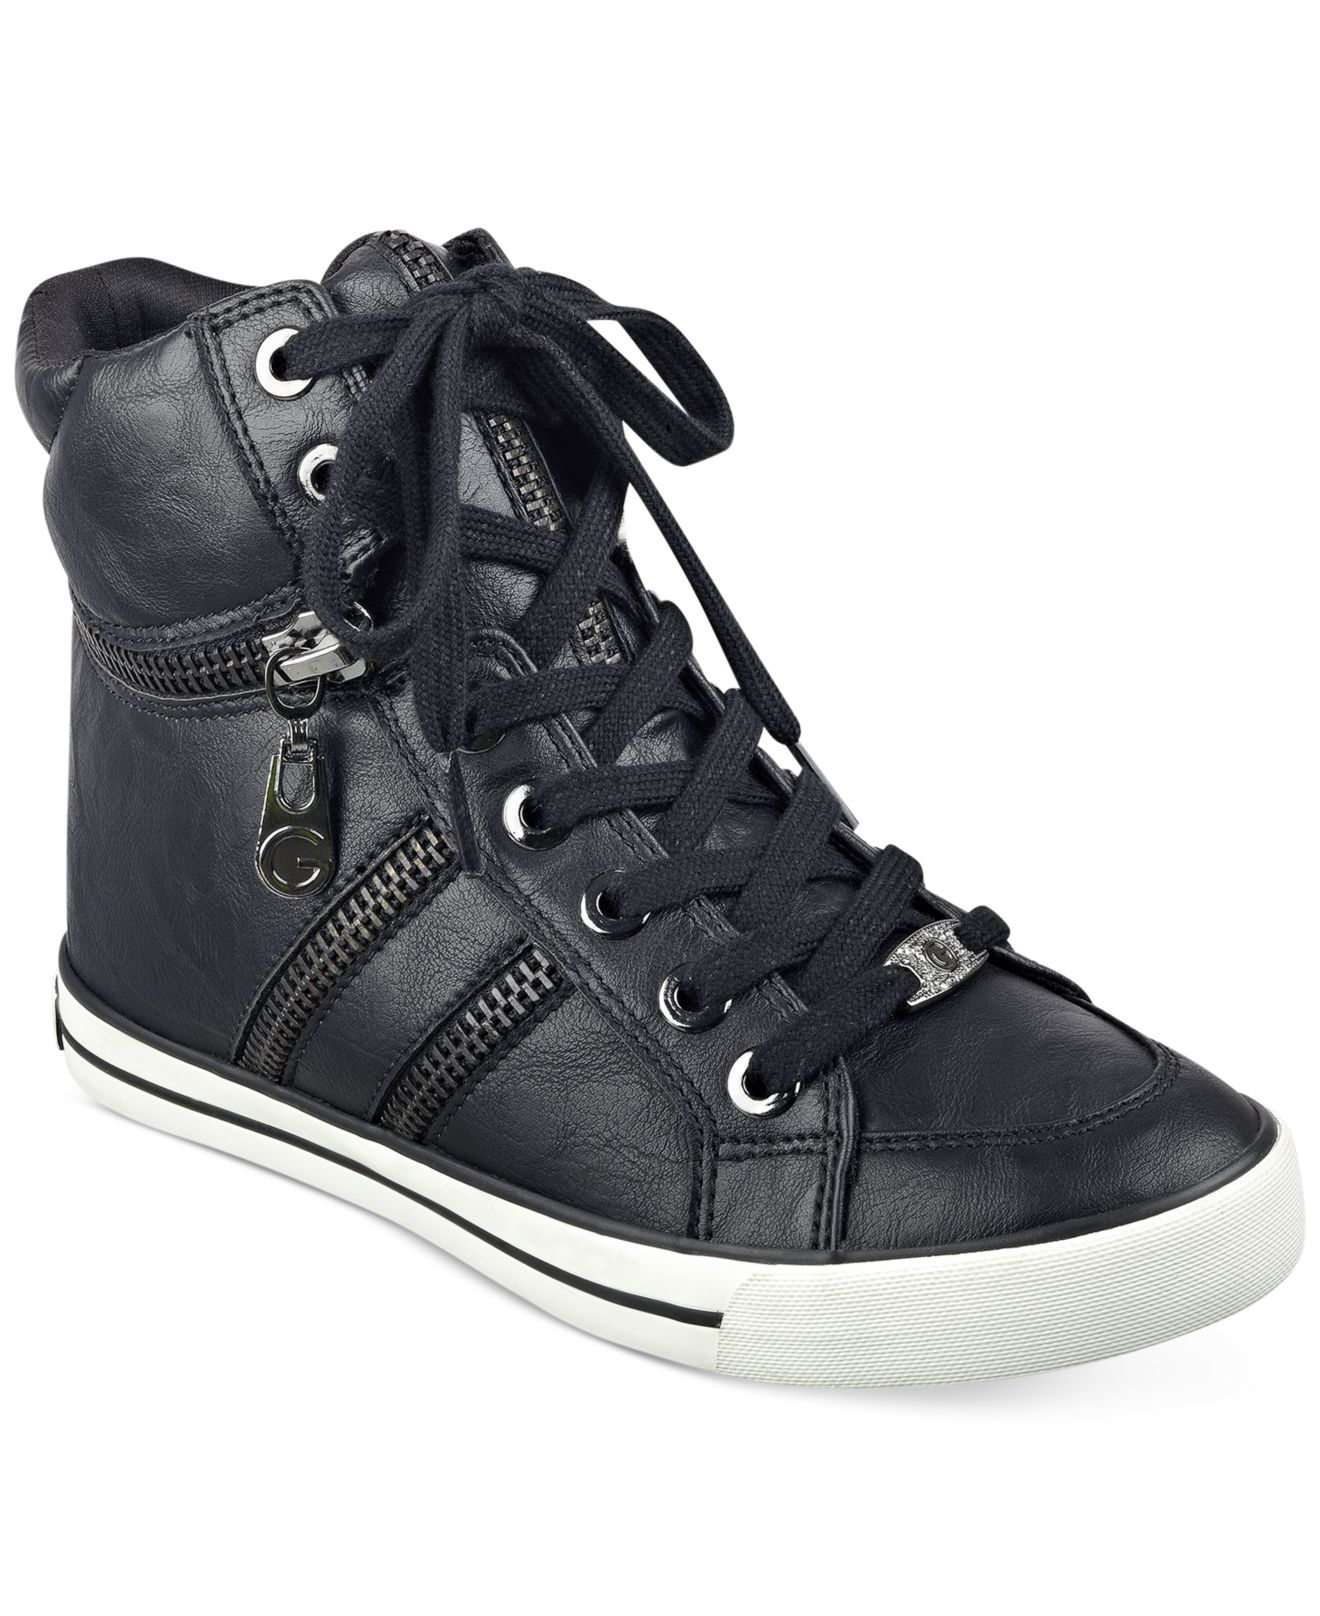 Other classic-styled high-top sneakers include the PF Flyers Center Hi and the High Top Vulcanized sneaker of the Japanese-based brand Shoes Like Pottery. High-Top Sneakers with Allover Print. A definite eye-catcher, this type of sneaker have graphics all over its upper.